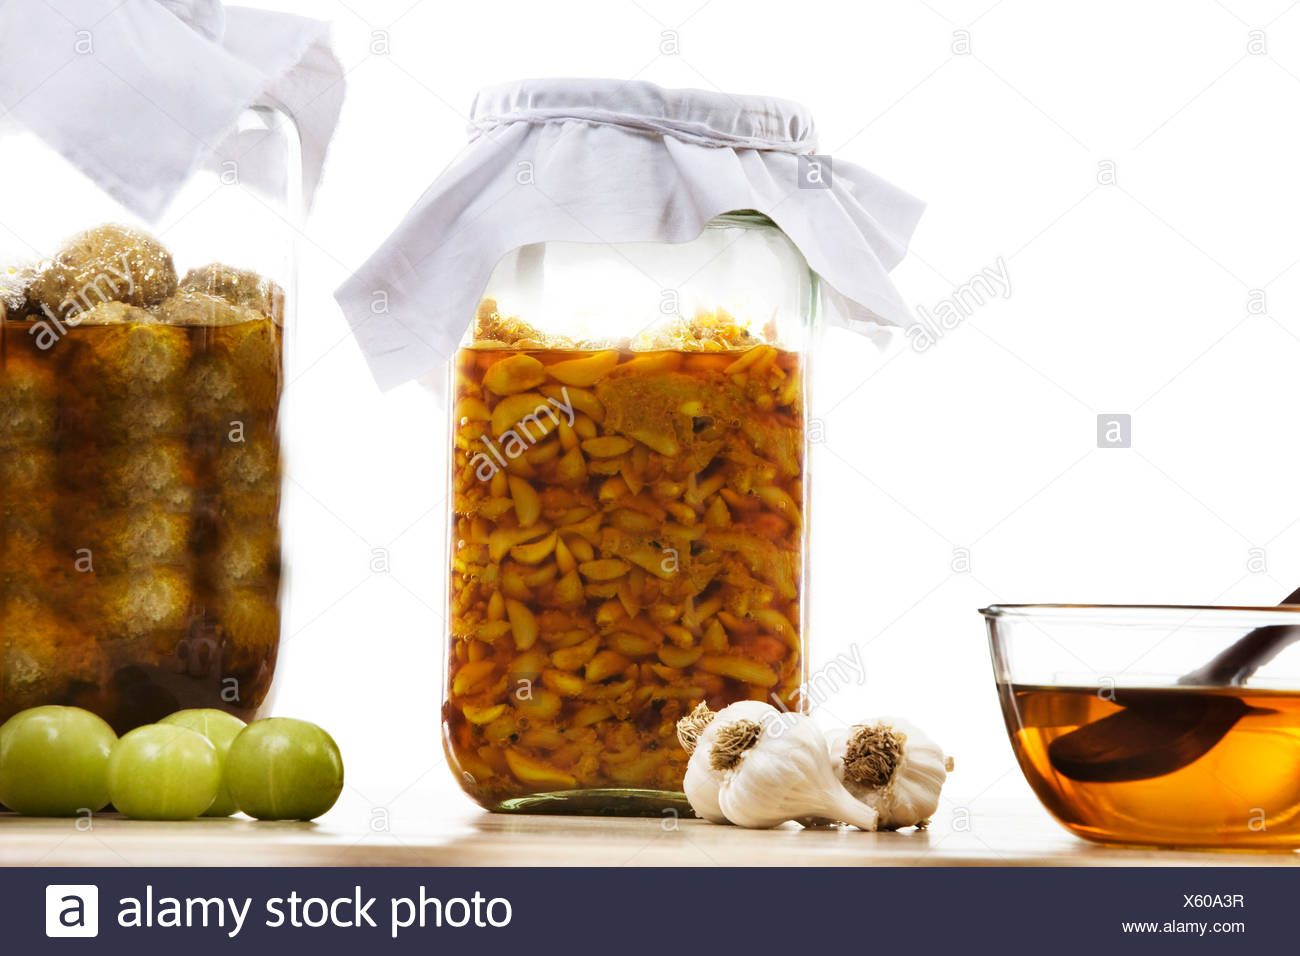 Jars filled with garlic and gooseberry pickle - Stock Image